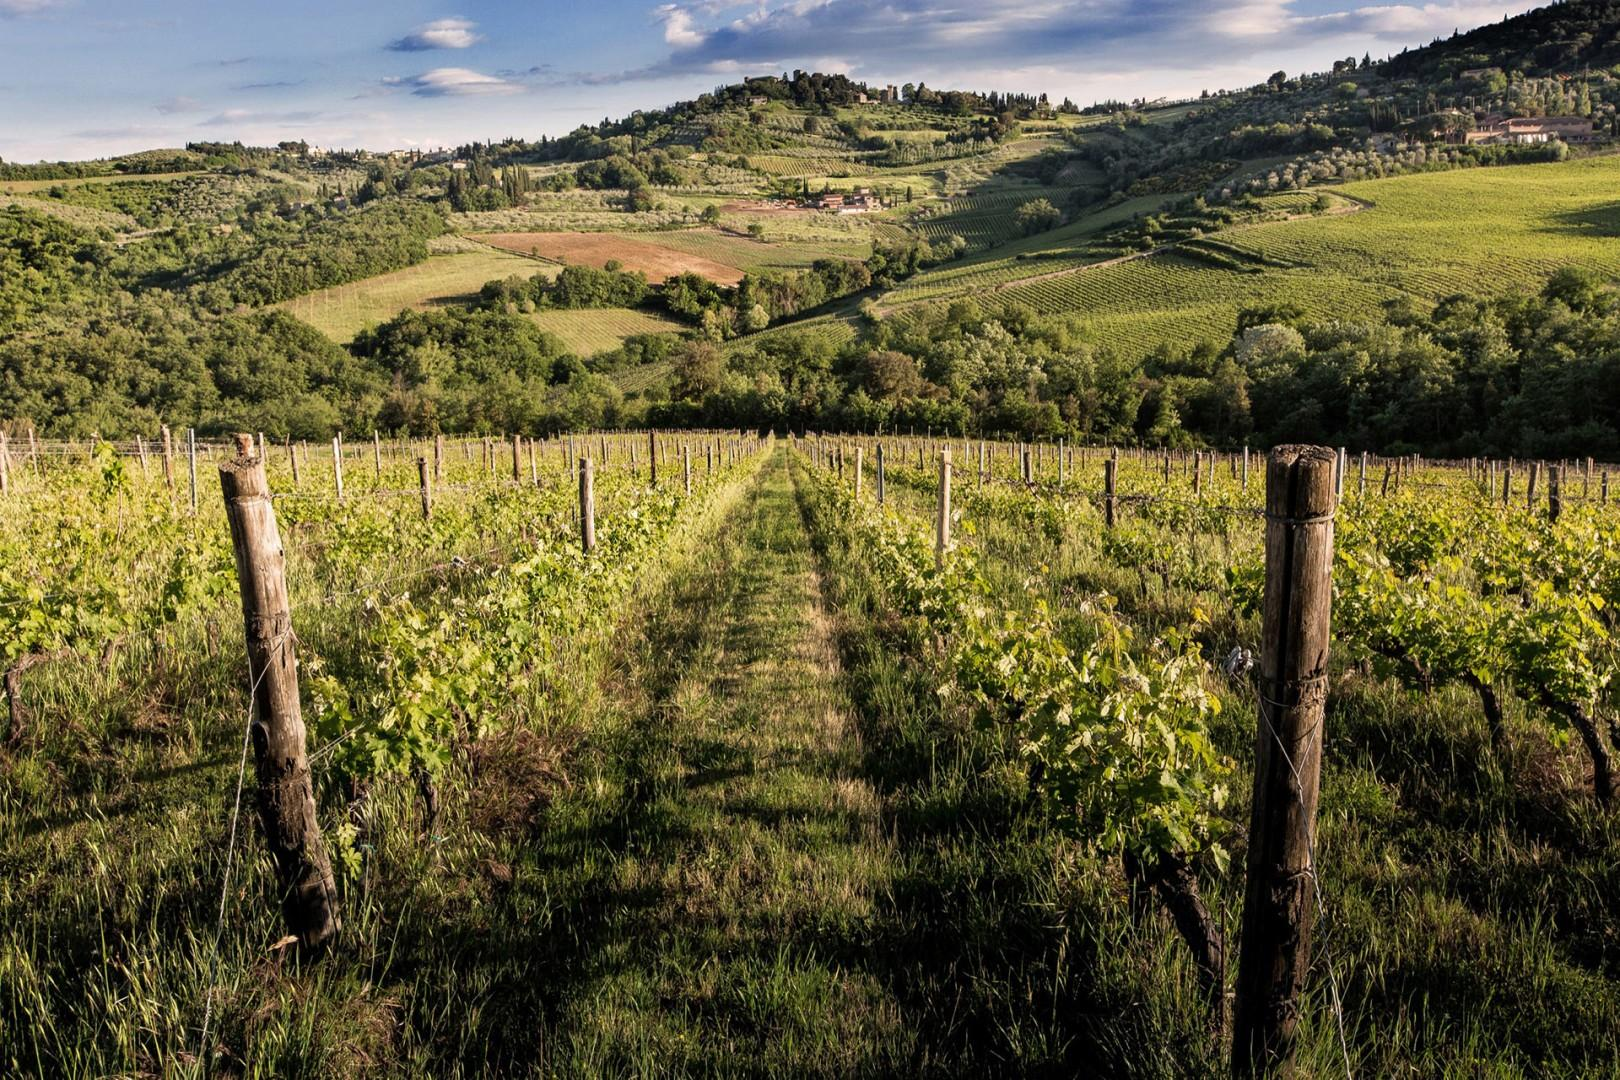 Be enchanted by the scenic views of vineyards and rolling hills that stretch out into the distance.